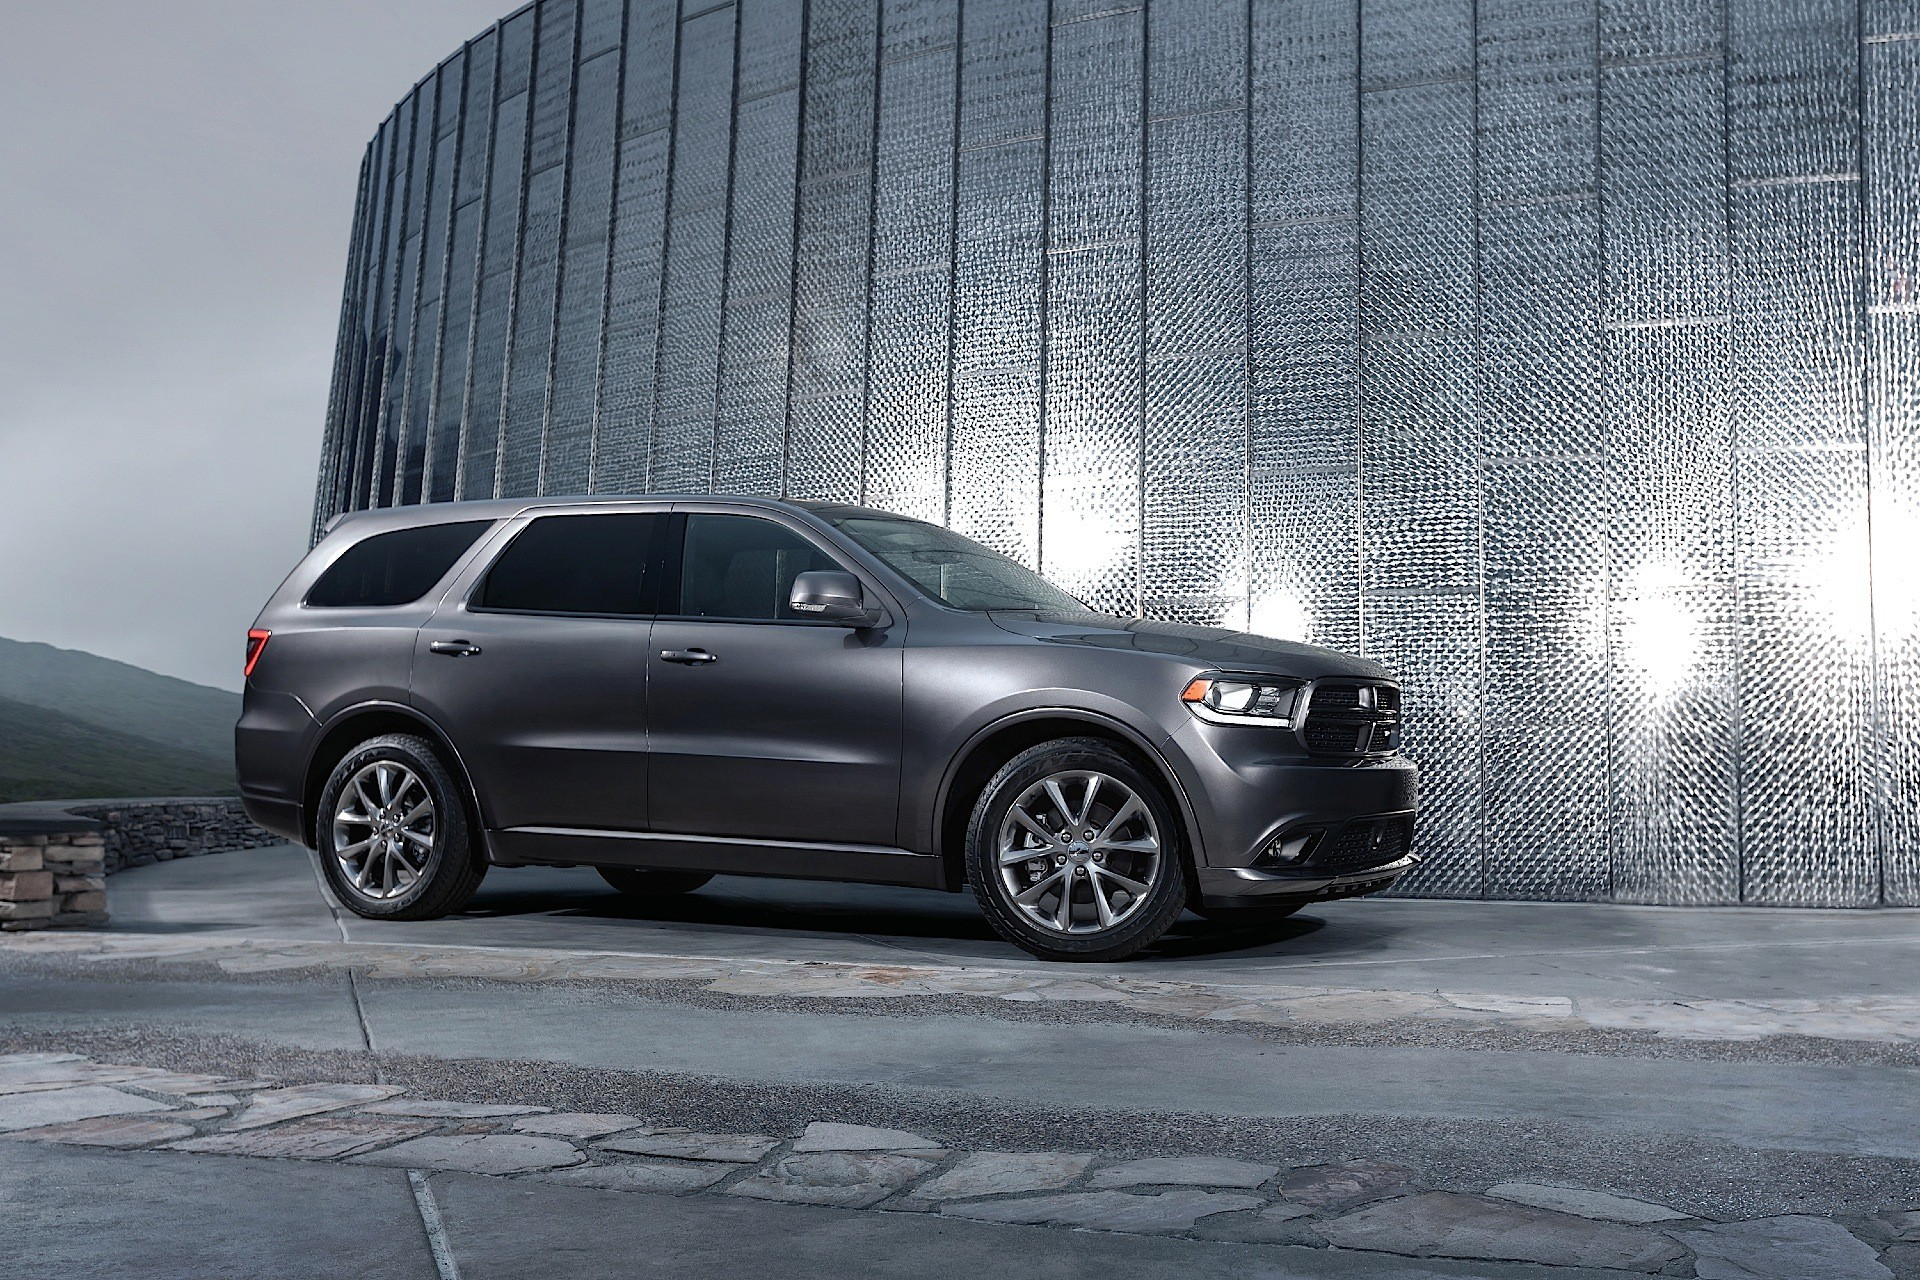 Dodge Durango Hellcat Is A Possibility The Srt Is Close To Market Launch on 2016 Dodge Durango